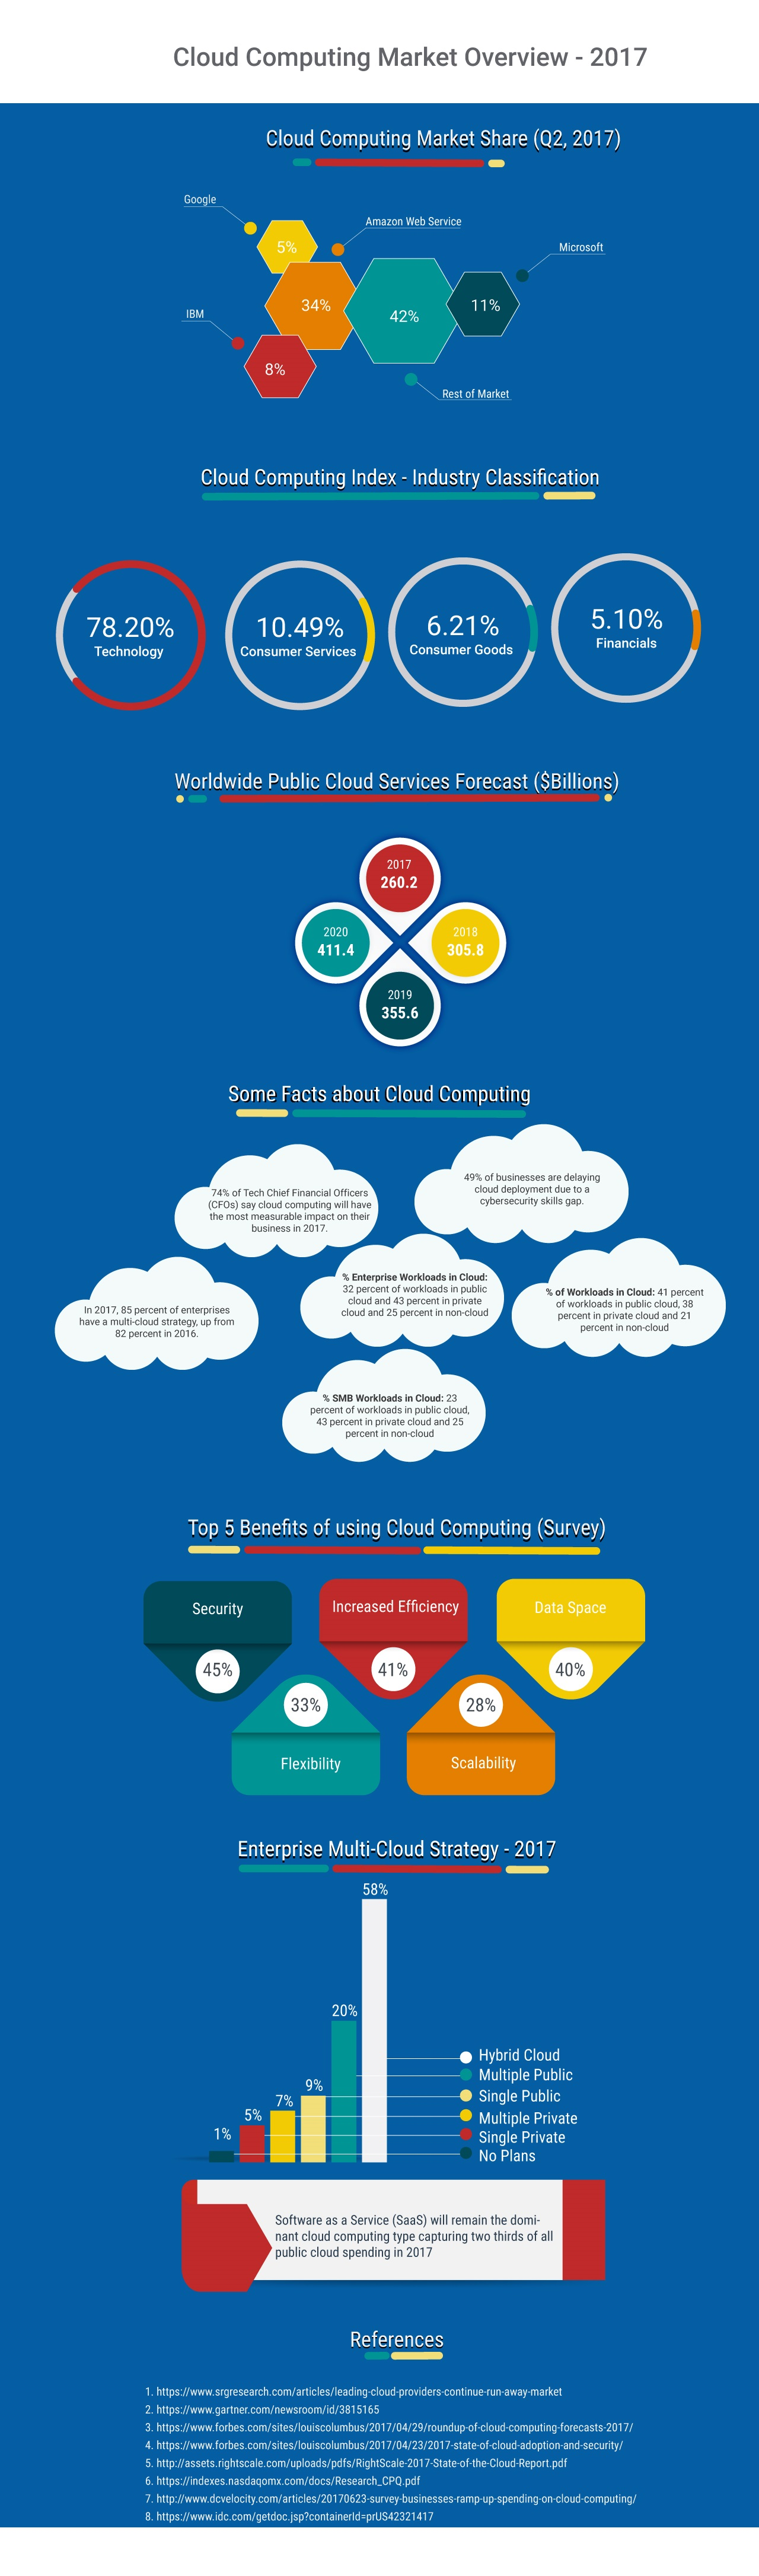 cloud-computing-market-overview-2017